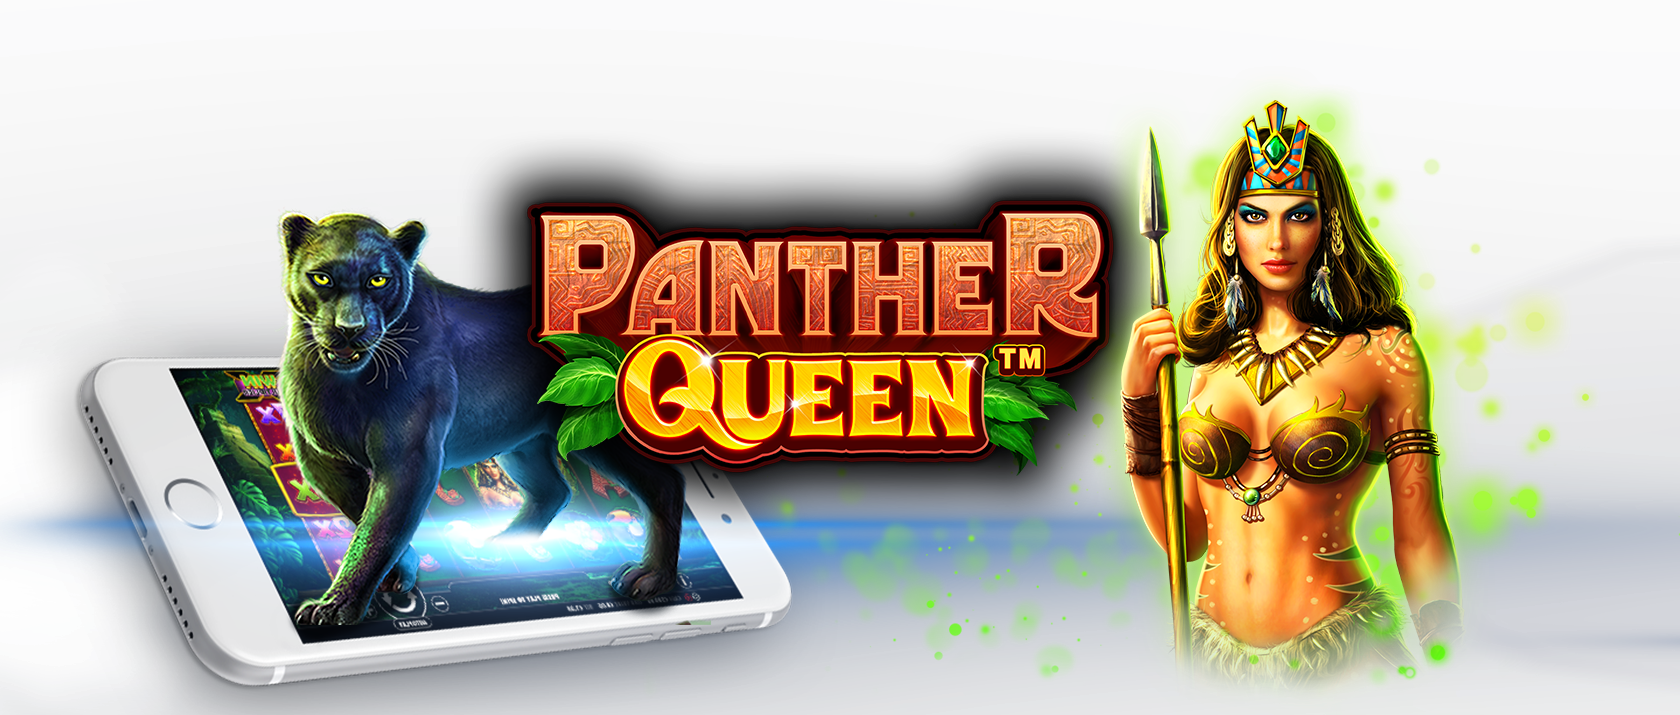 panther queen logo slots